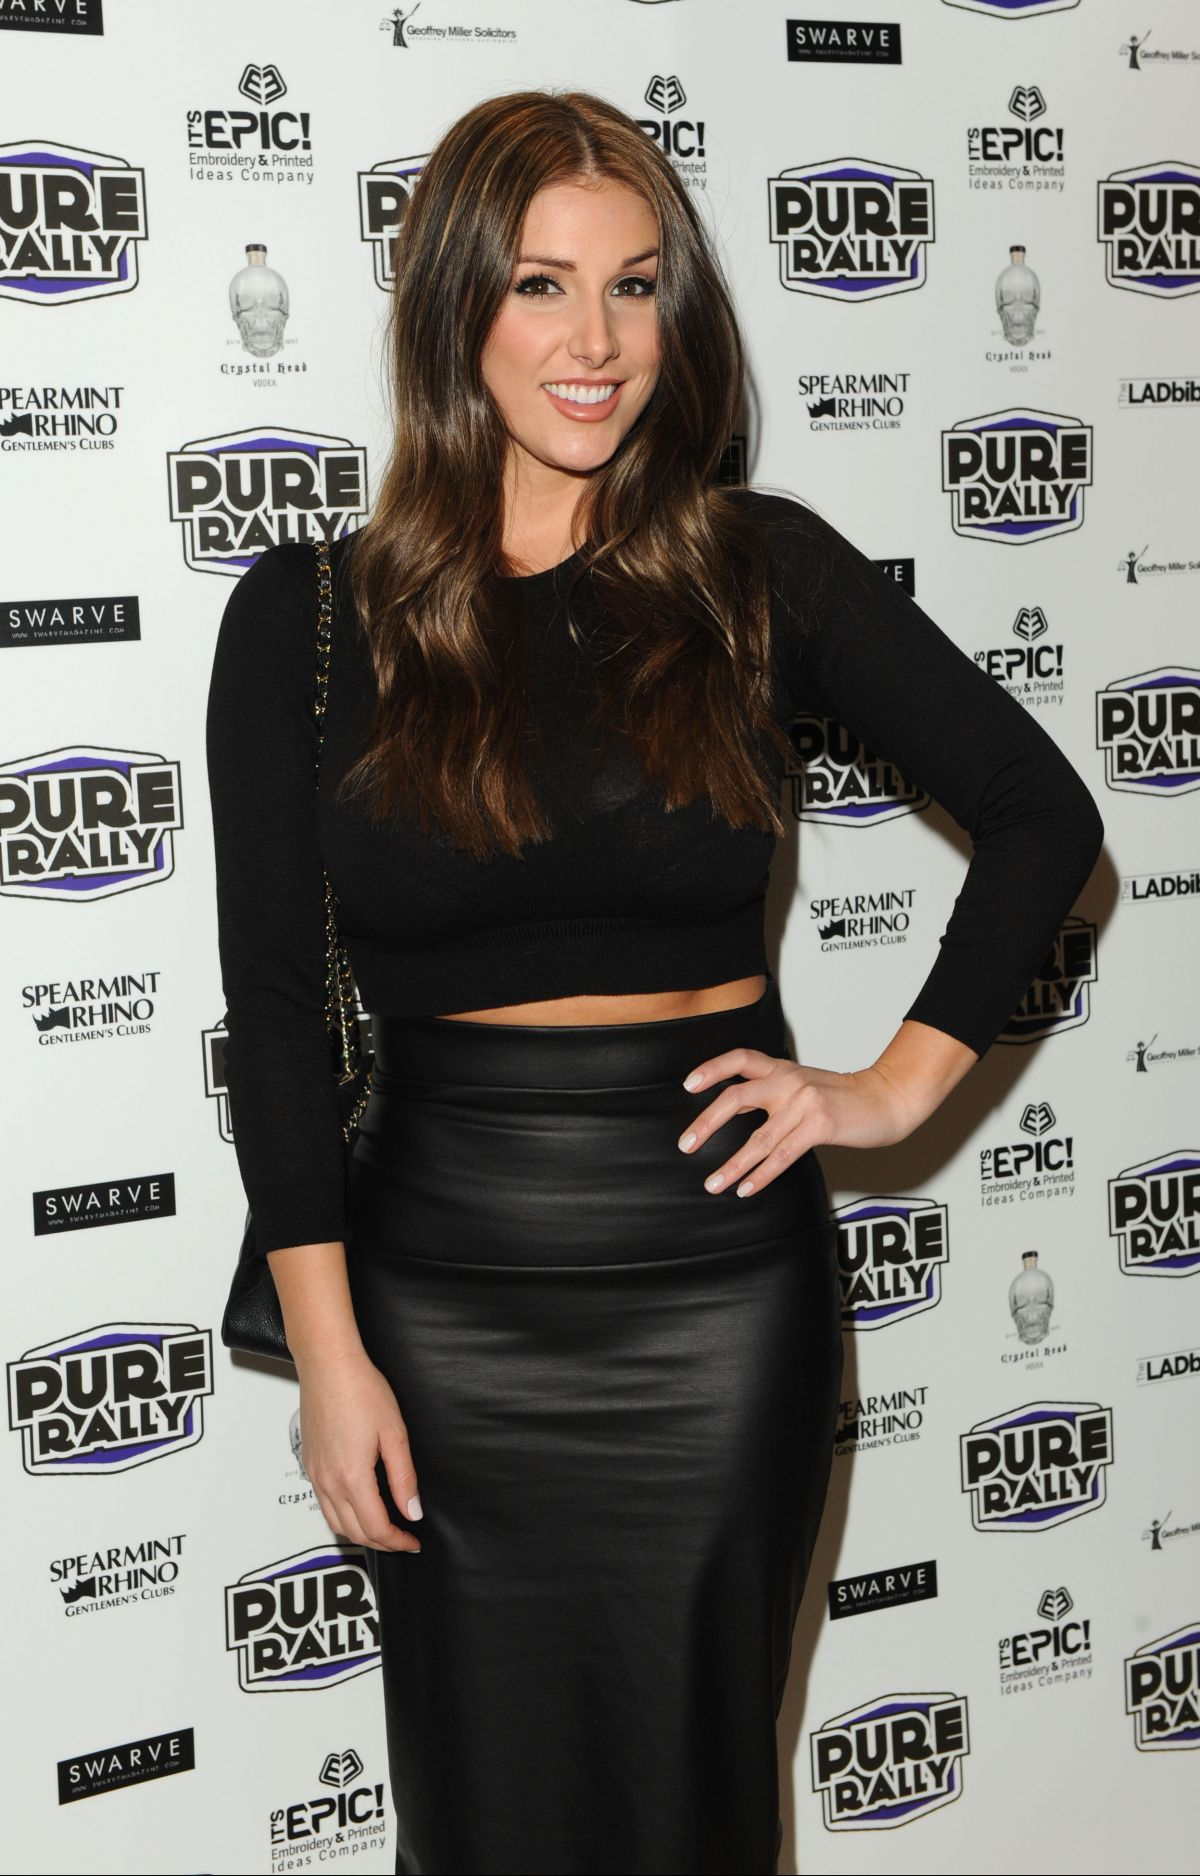 LUCY PINDER at Pure Rally Event at Mayfair in London